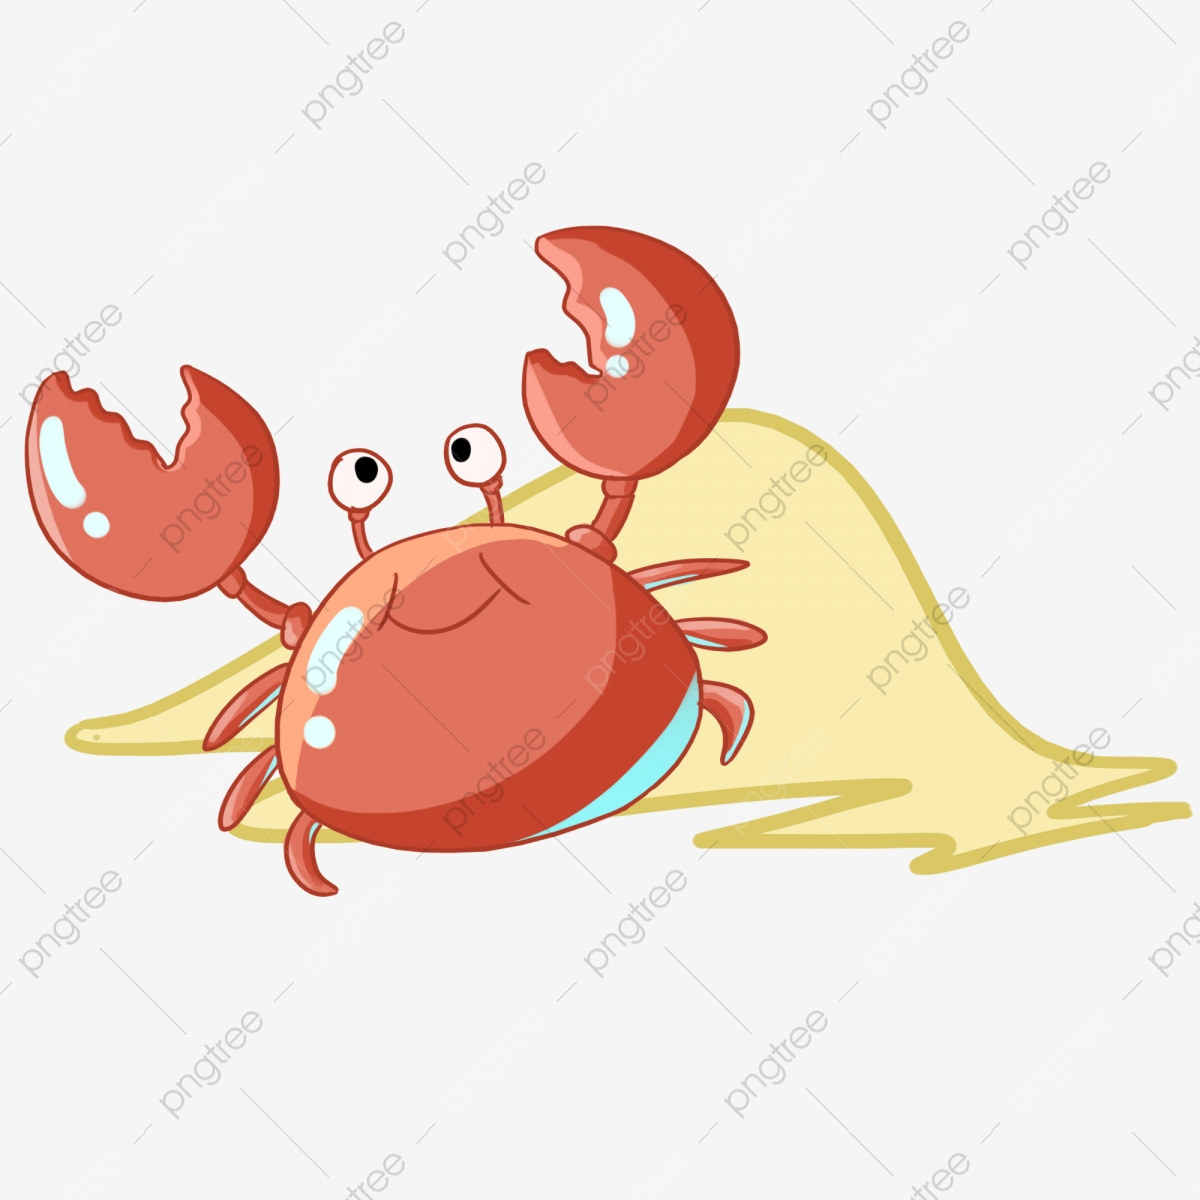 Crab clipart beach. Crabs circle png vector